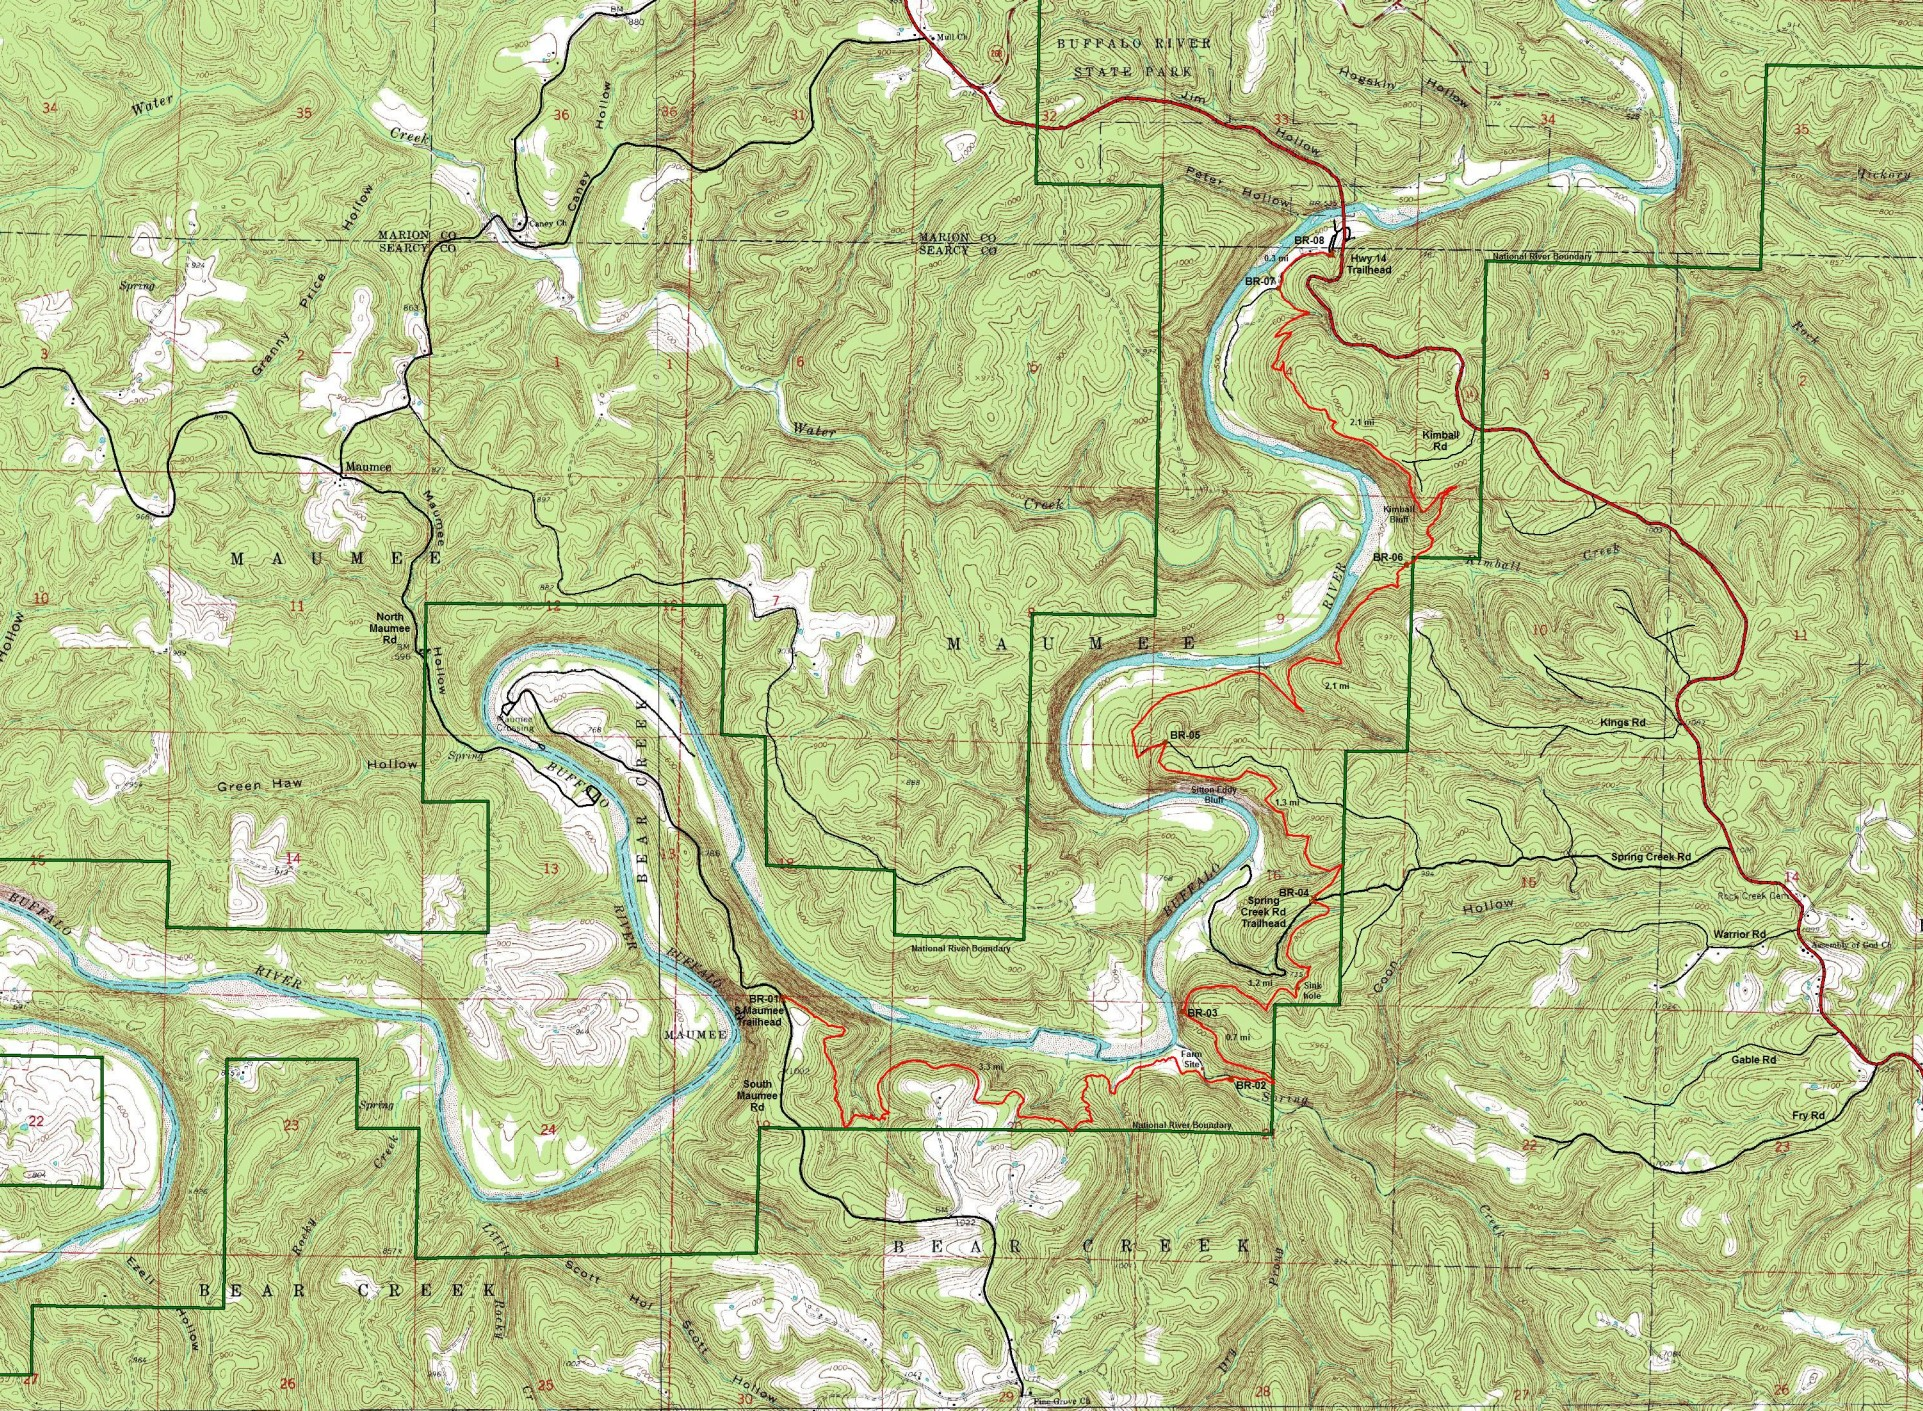 Free Arkansas Topographic Map.Buffalo River Trail Maumee Section Free Detailed Topo Map